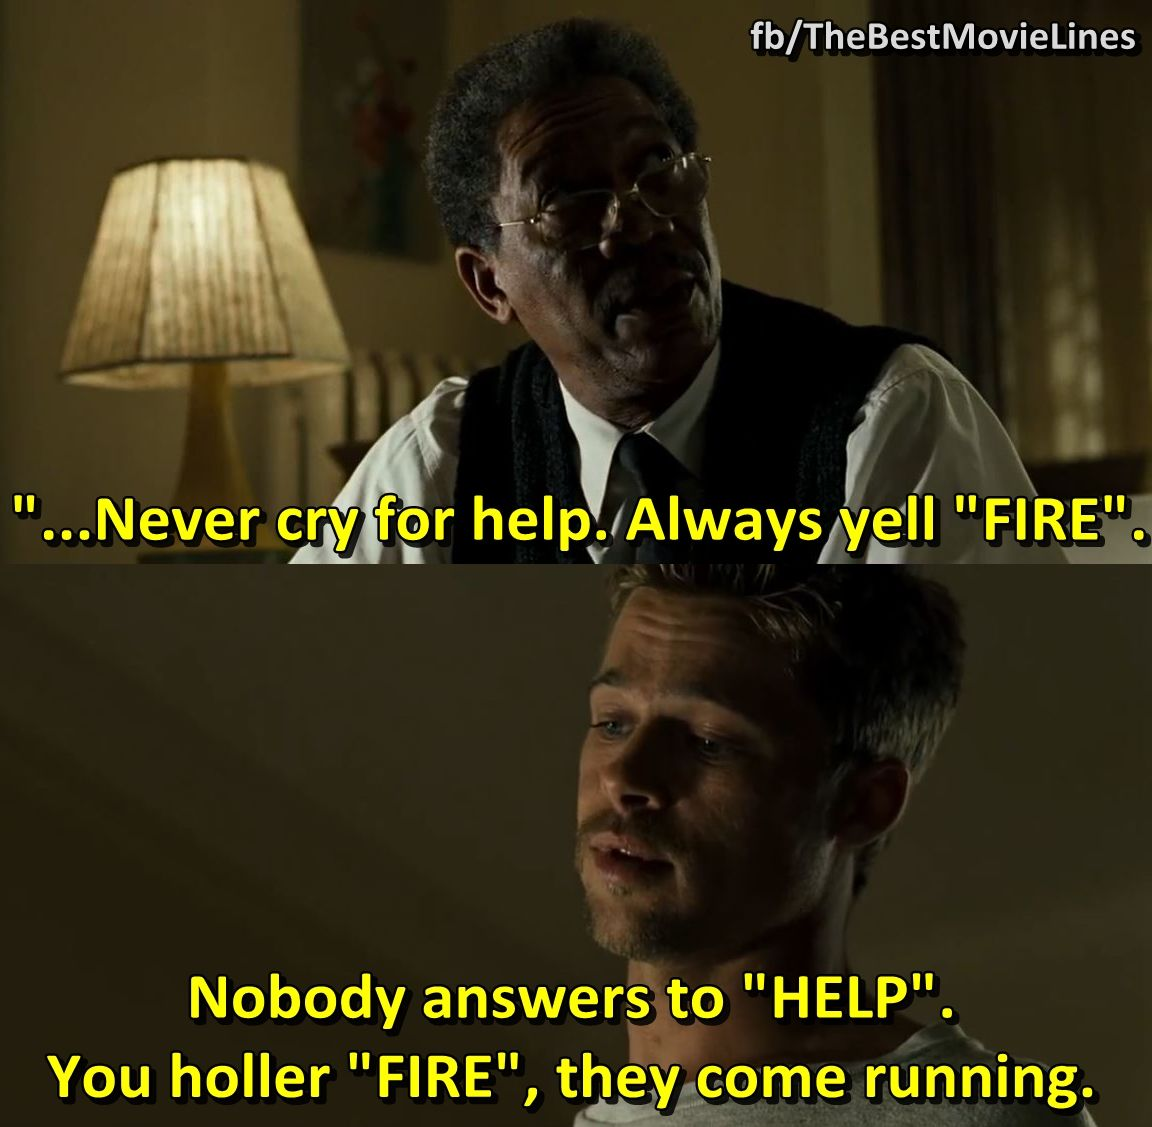 Quotes From The Movie The Help Se7En Seven 1995 Brad Pitt Morgan Freeman Kevin Spacey Dir